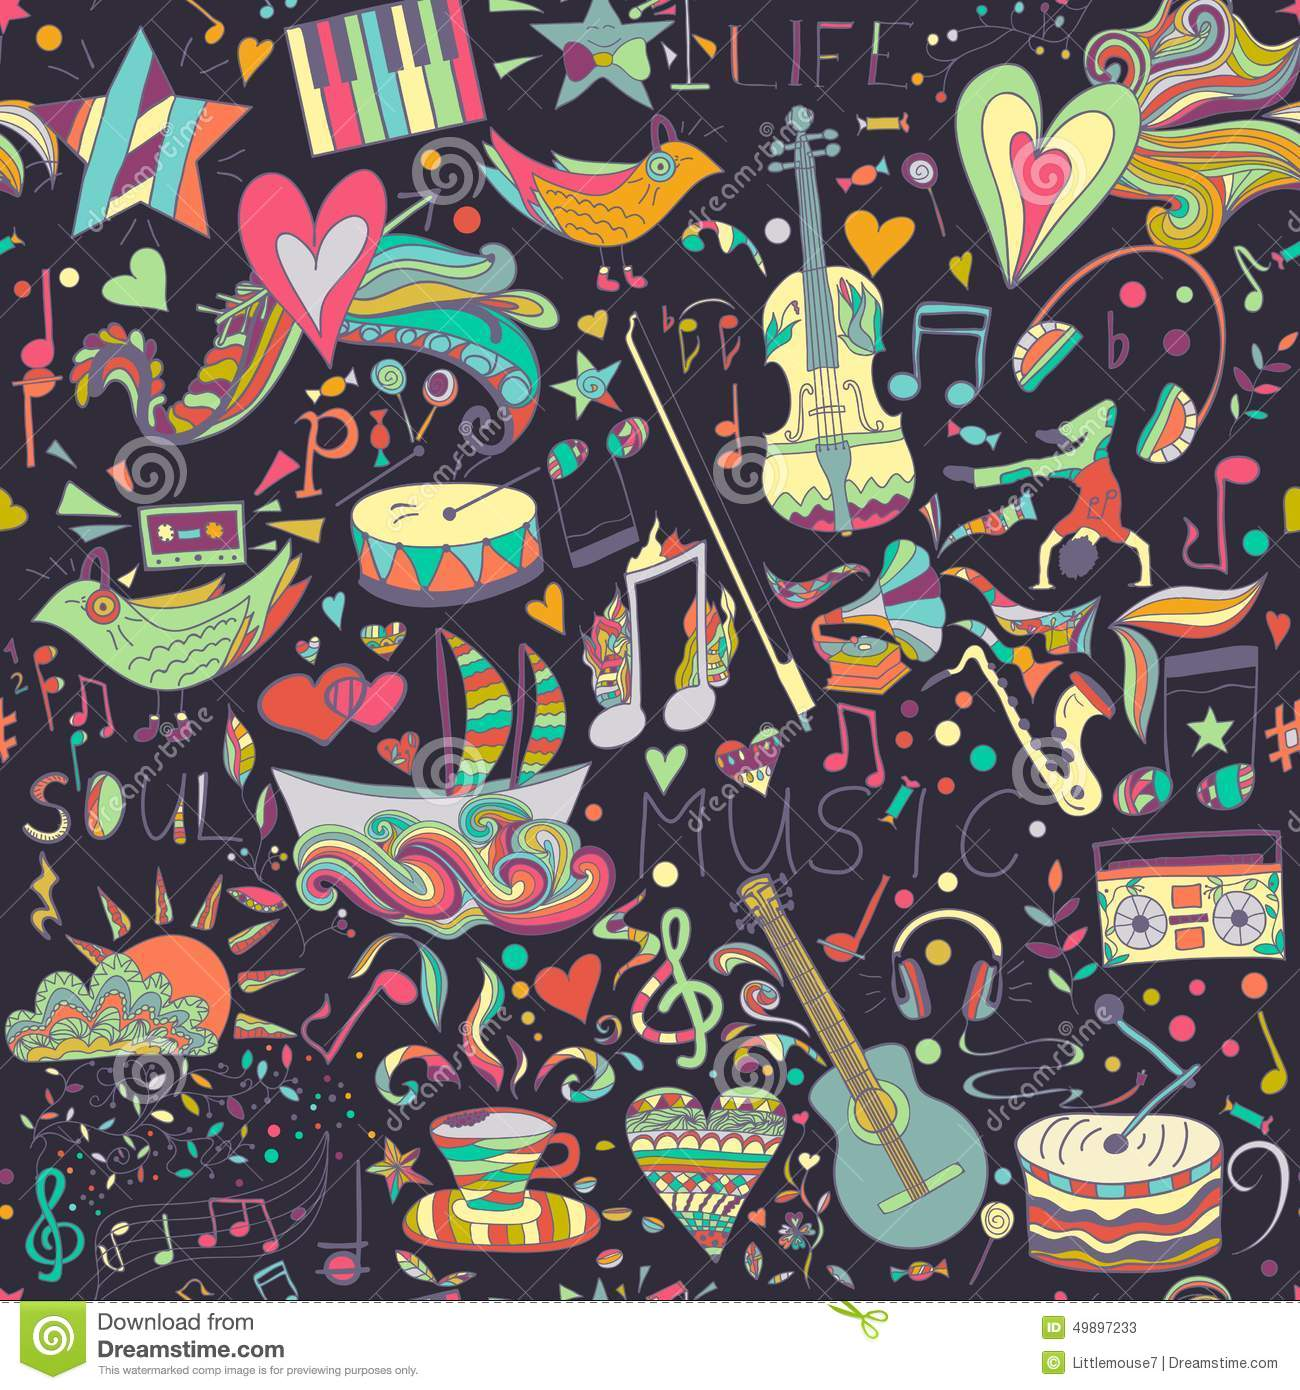 Simple Wallpaper Music Summer - seamless-pattern-hand-drawn-colorful-musical-vector-doodles-theme-music-joy-summer-template-can-be-used-49897233  Picture_93785.jpg